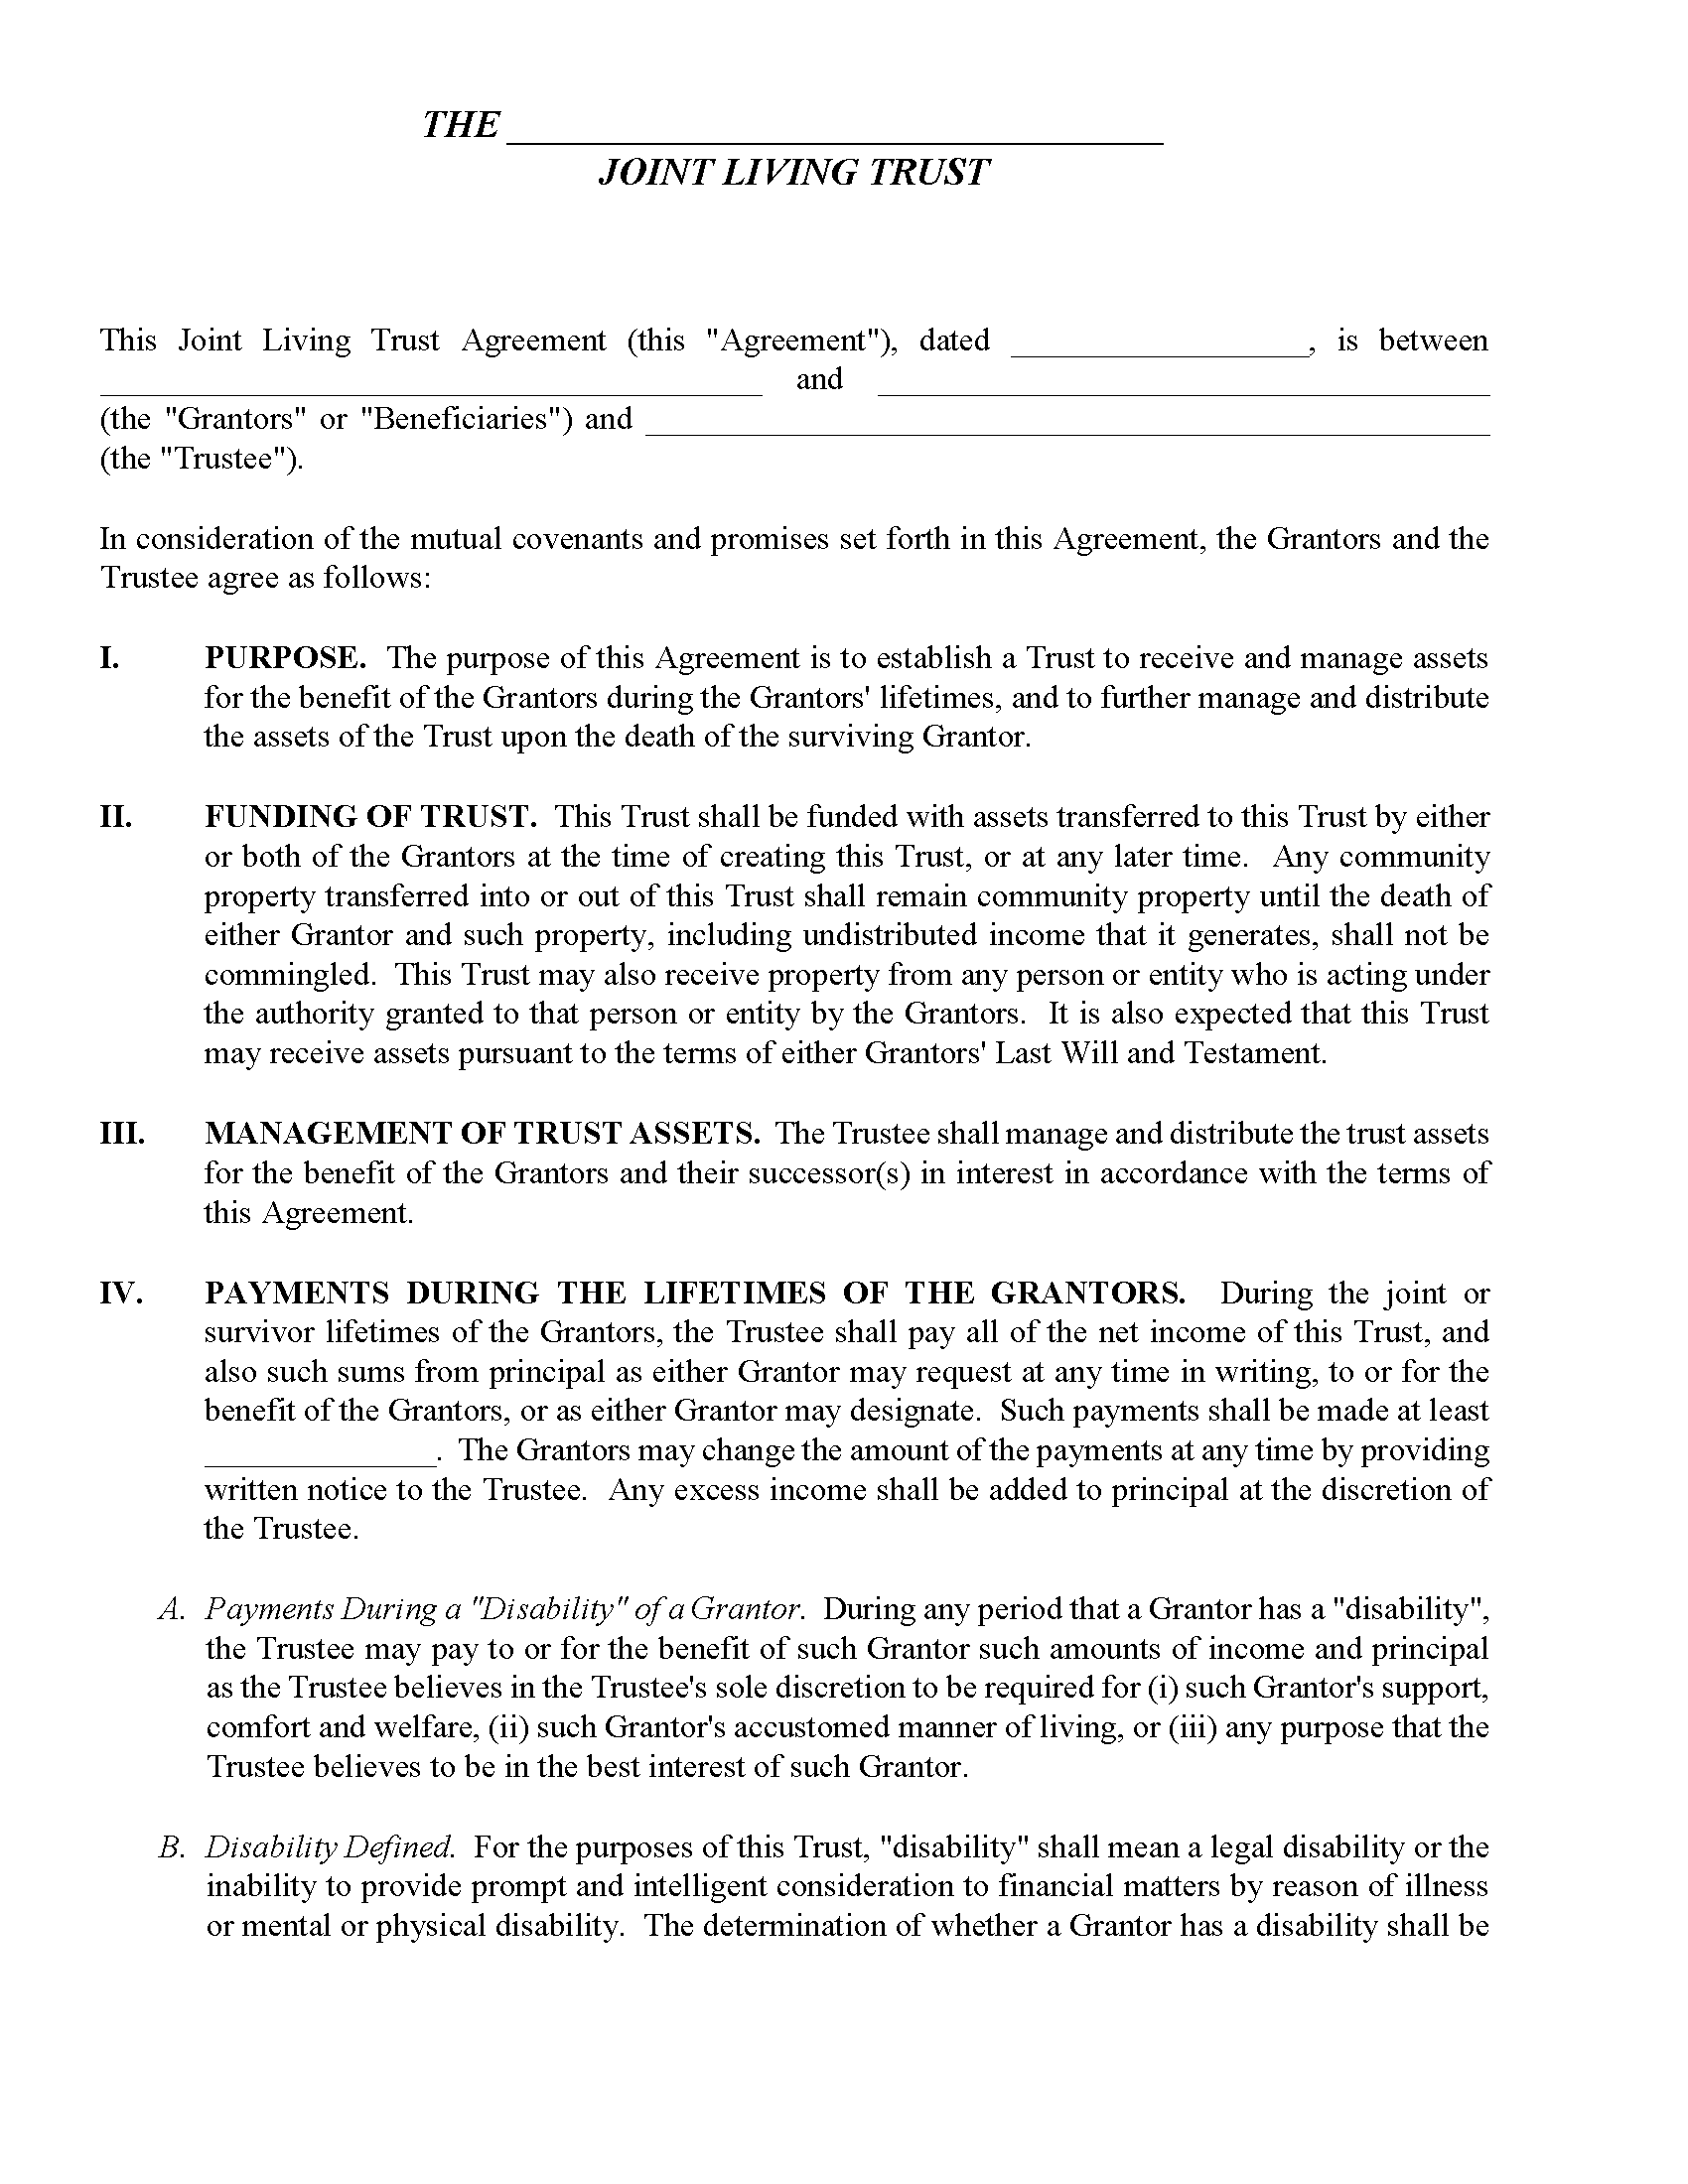 California Joint Living Trust Form